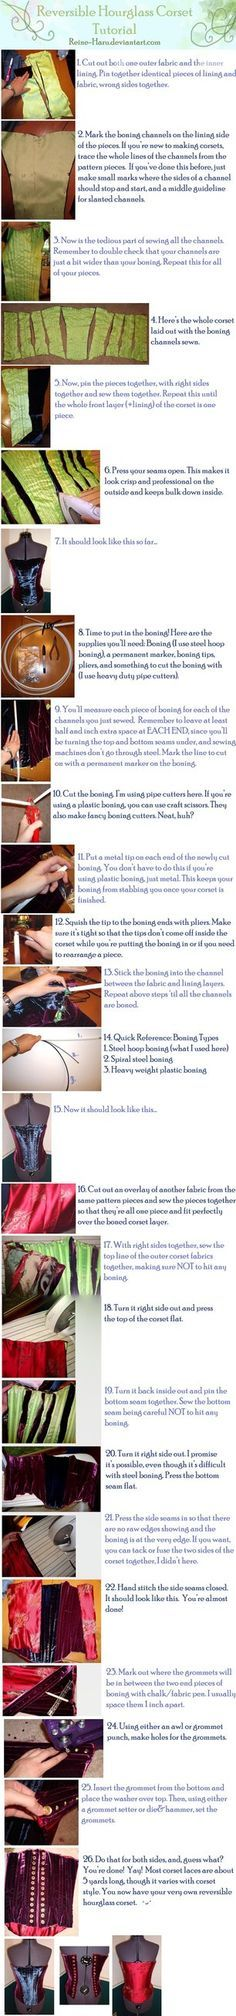 Reversible Corset Tutorial by ~Reine-Haru on deviantART